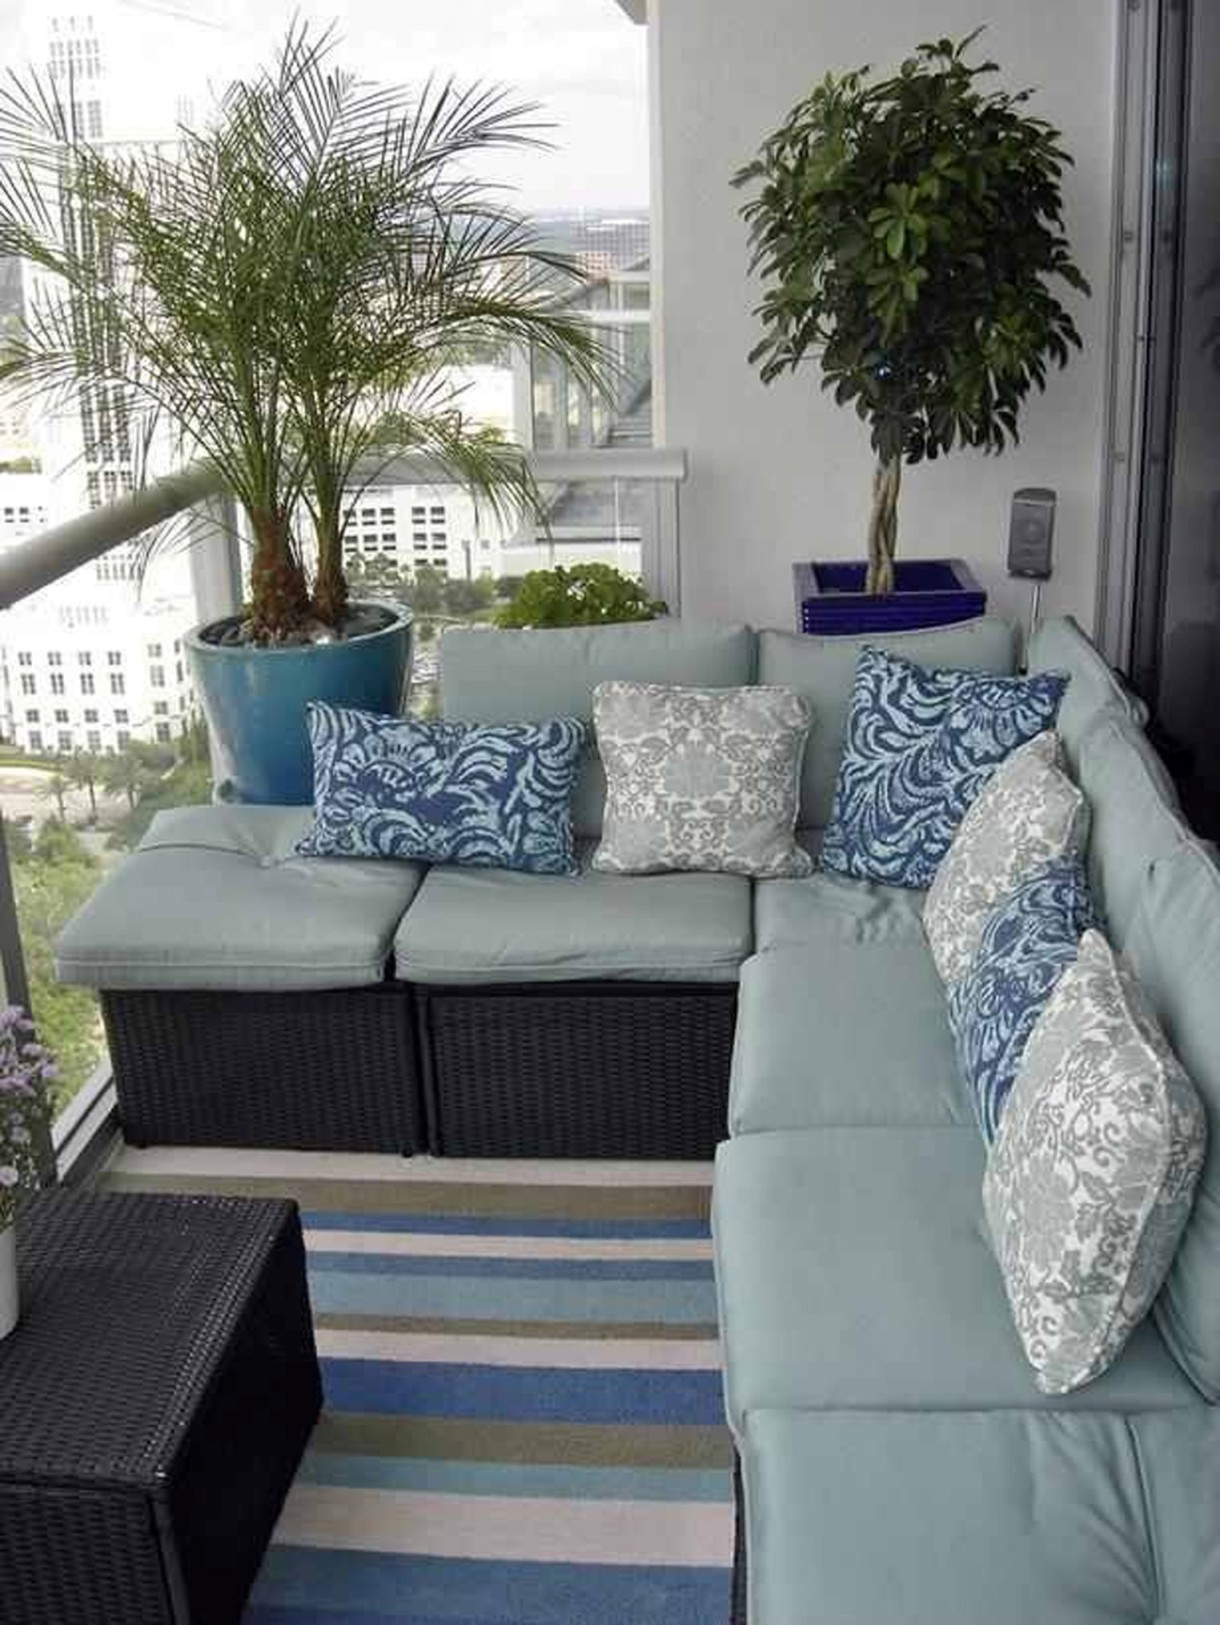 Modern Outdoor Design With Sofa Fabric